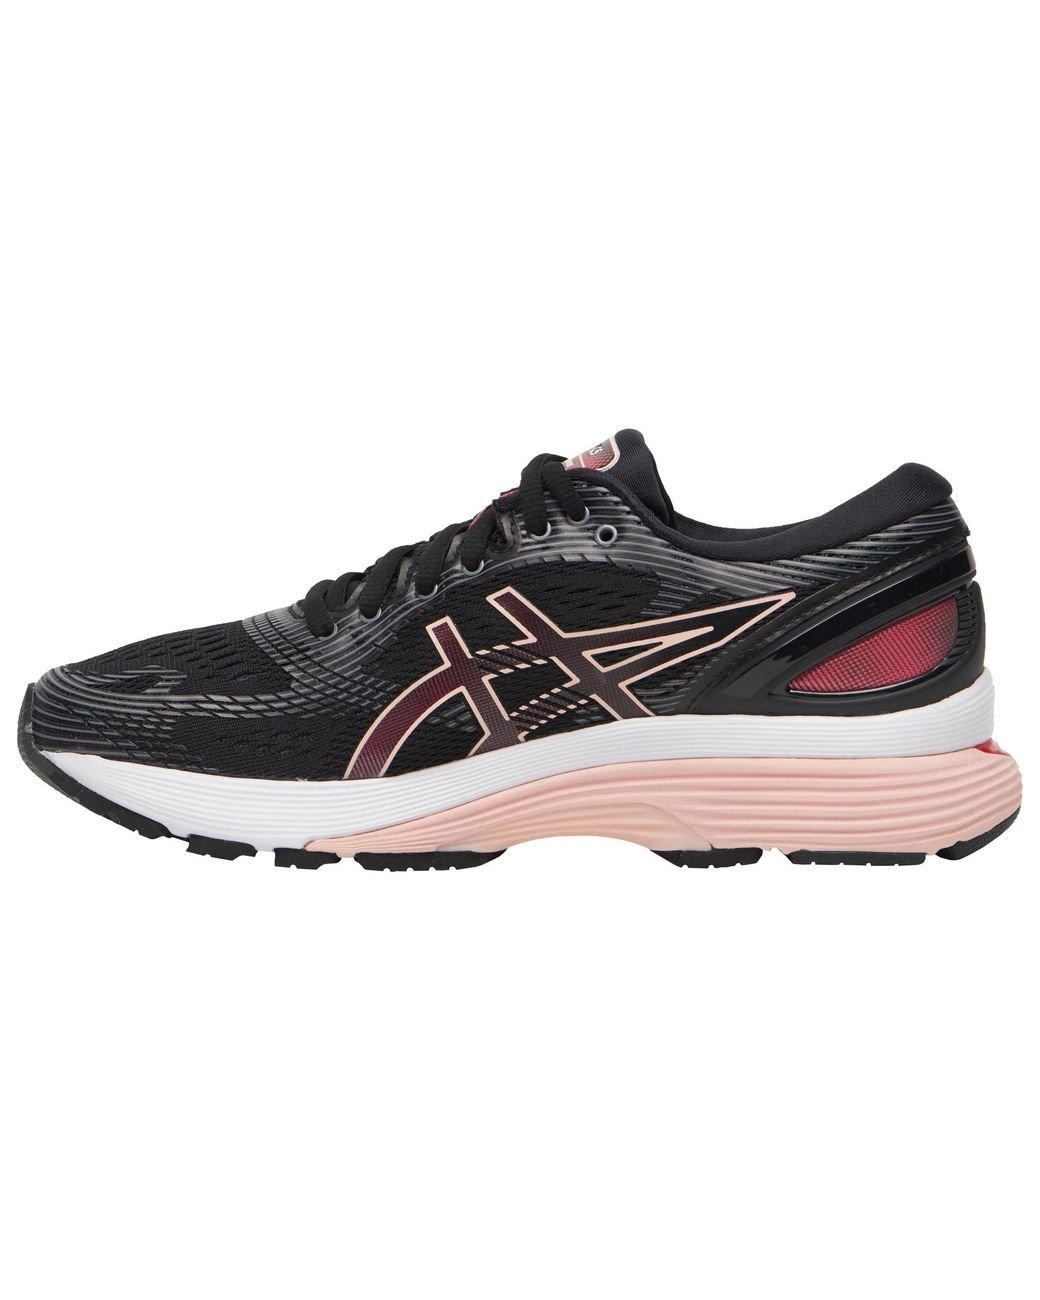 eastbay womens asics shoes us